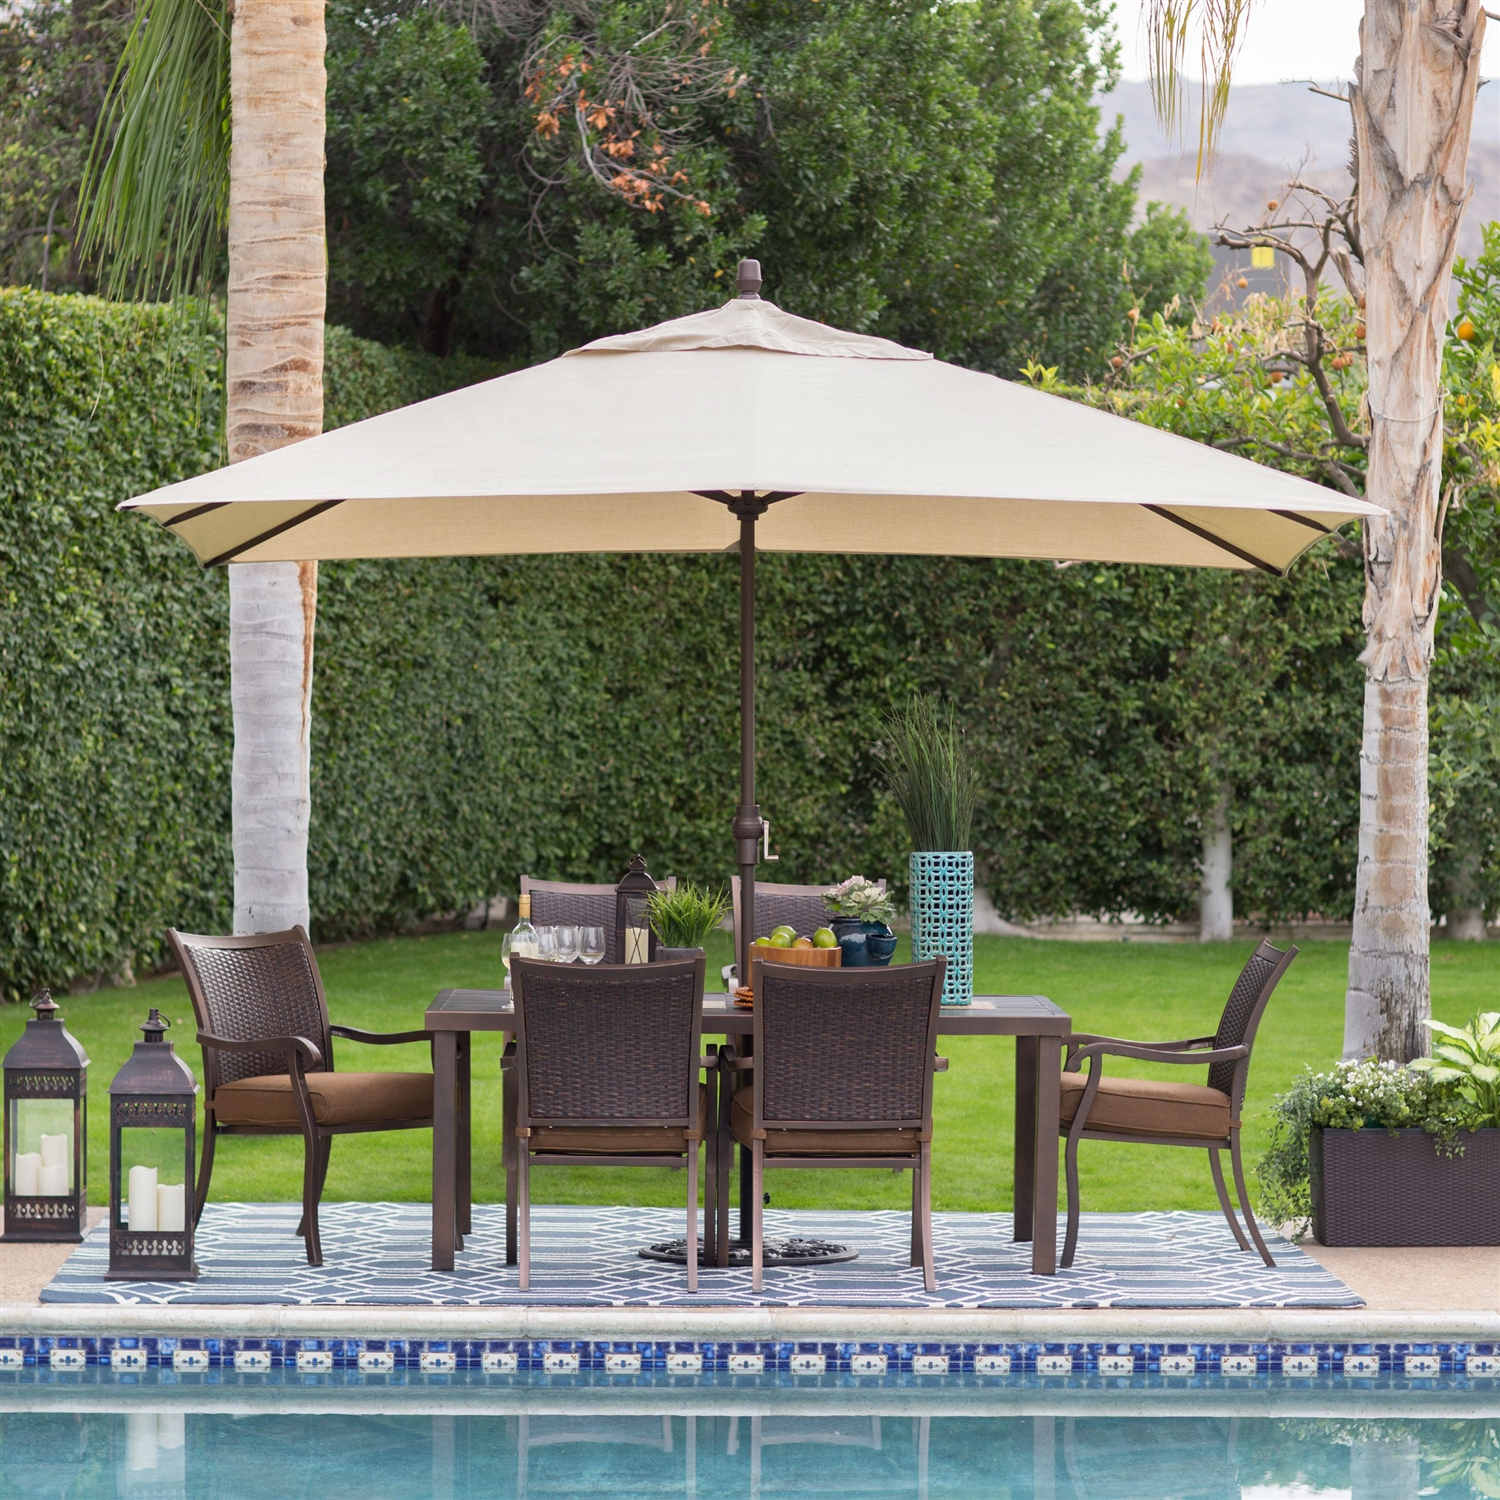 rectangle 8 ft x 11 ft patio umbrella with bronze finish pole and beige shade